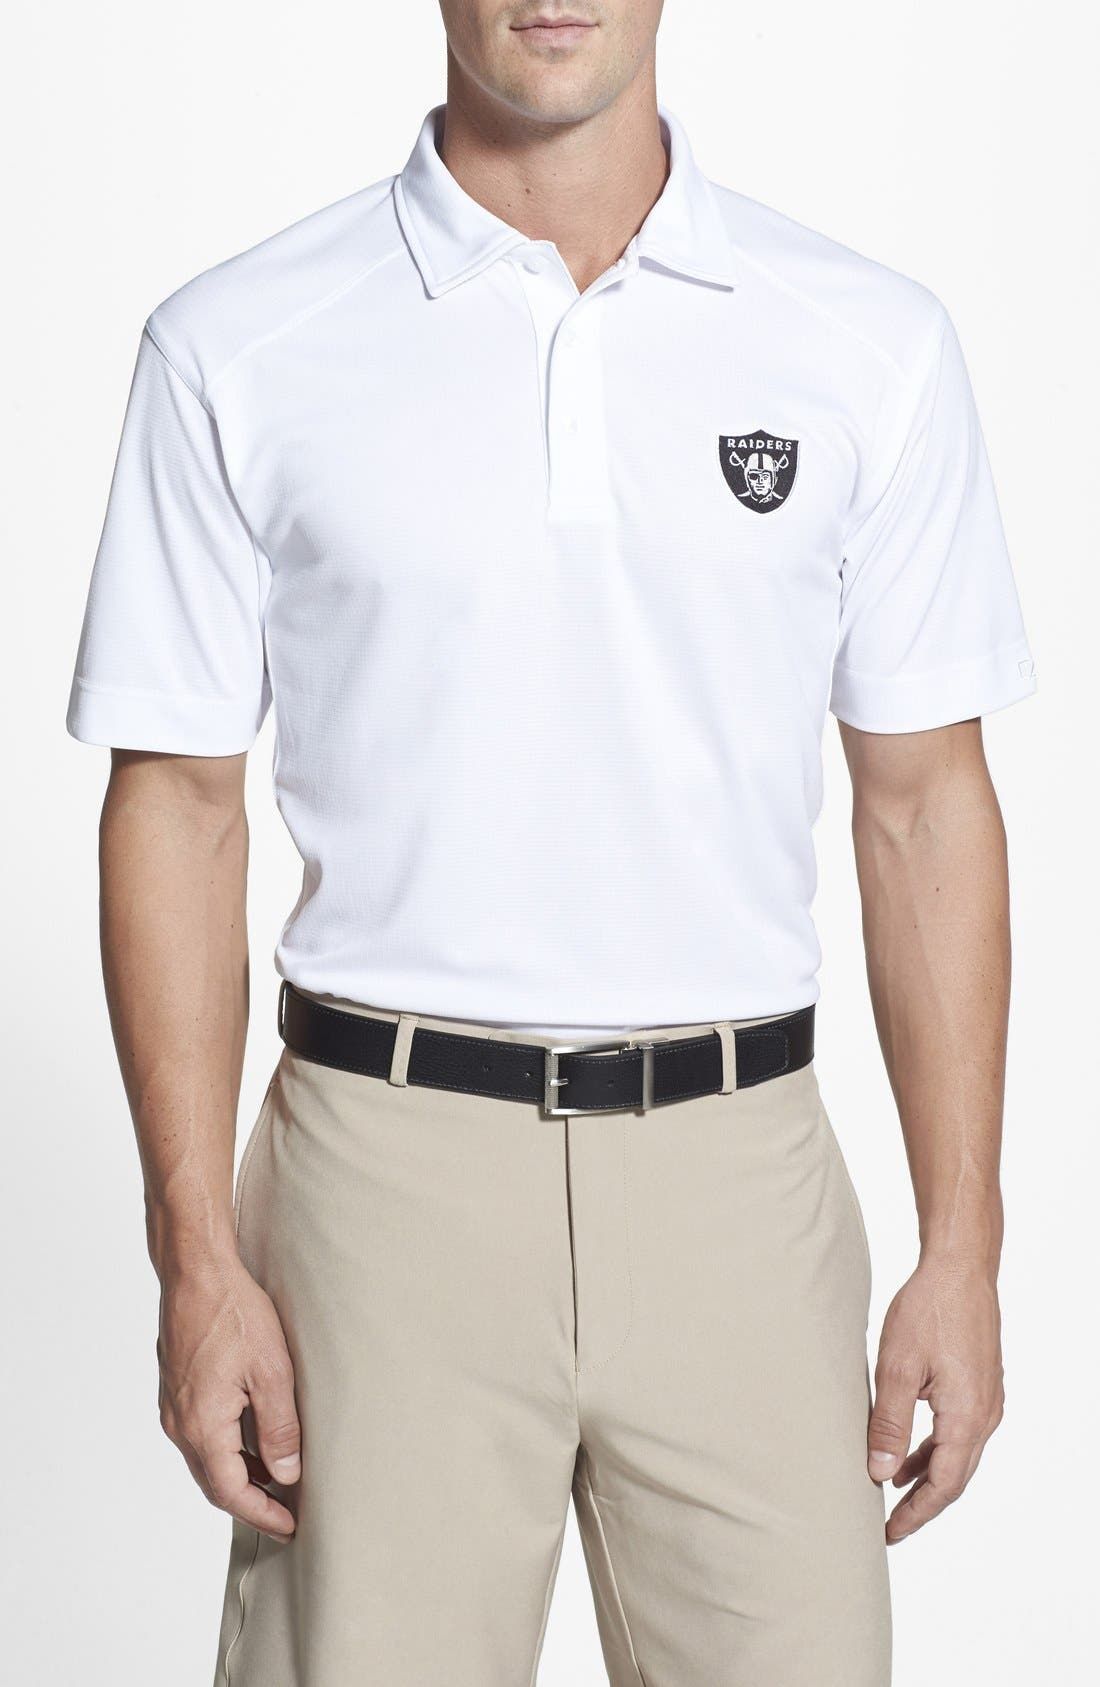 Oakland Raiders - Genre DryTec Moisture Wicking Polo,                             Main thumbnail 1, color,                             White